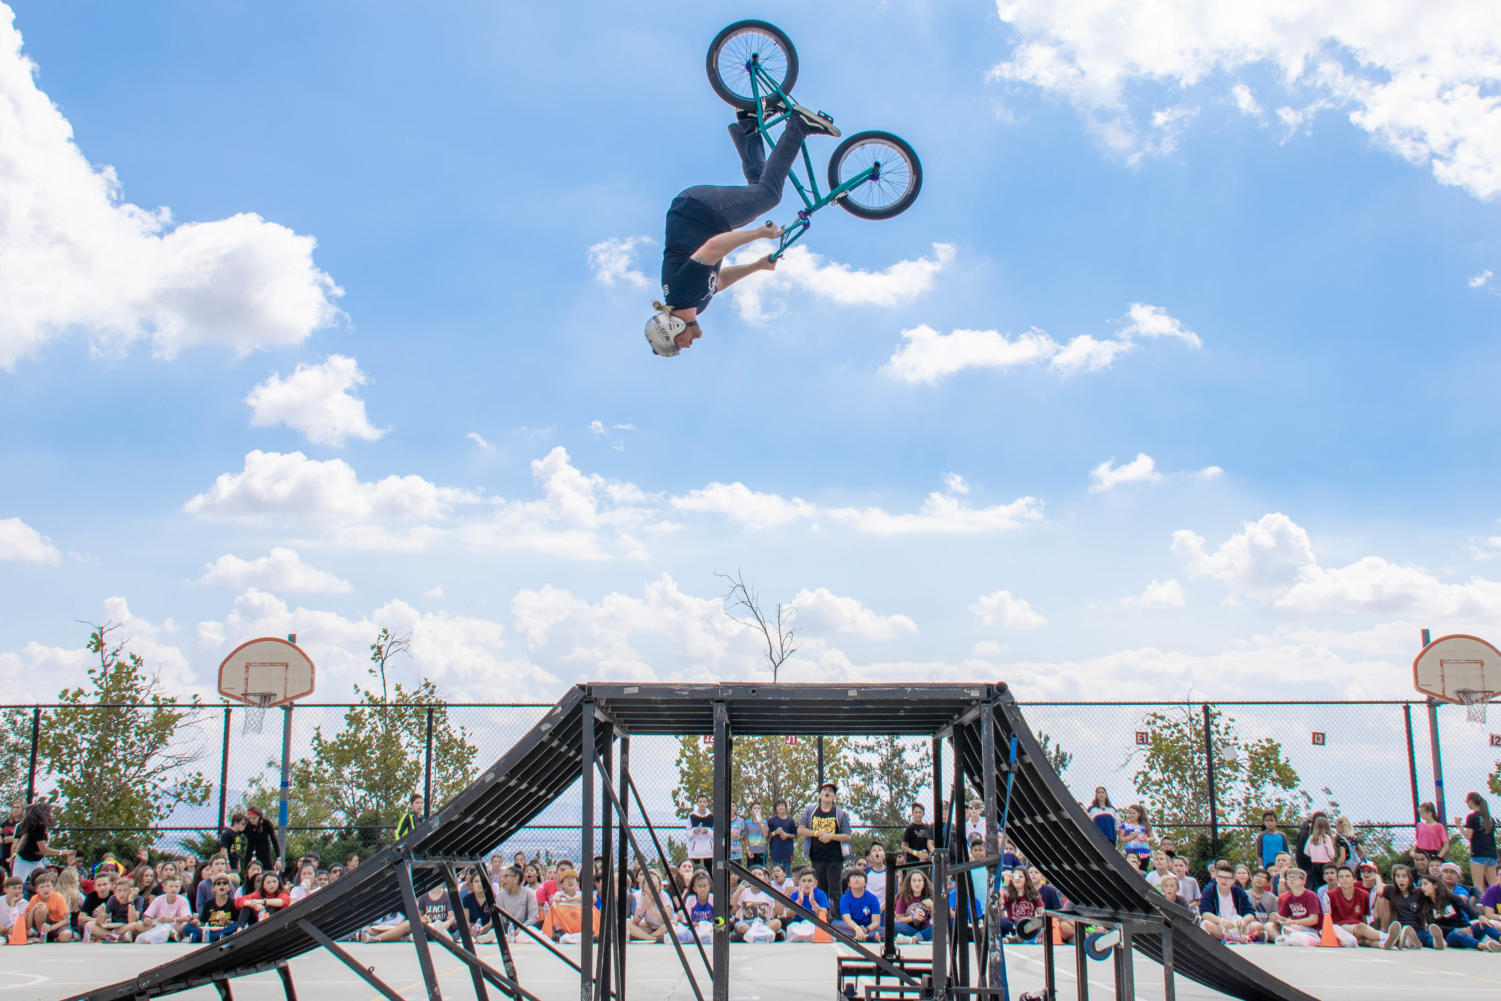 An awesome BMX show comes to Day Creek as a part of the Step It Up fundraiser.